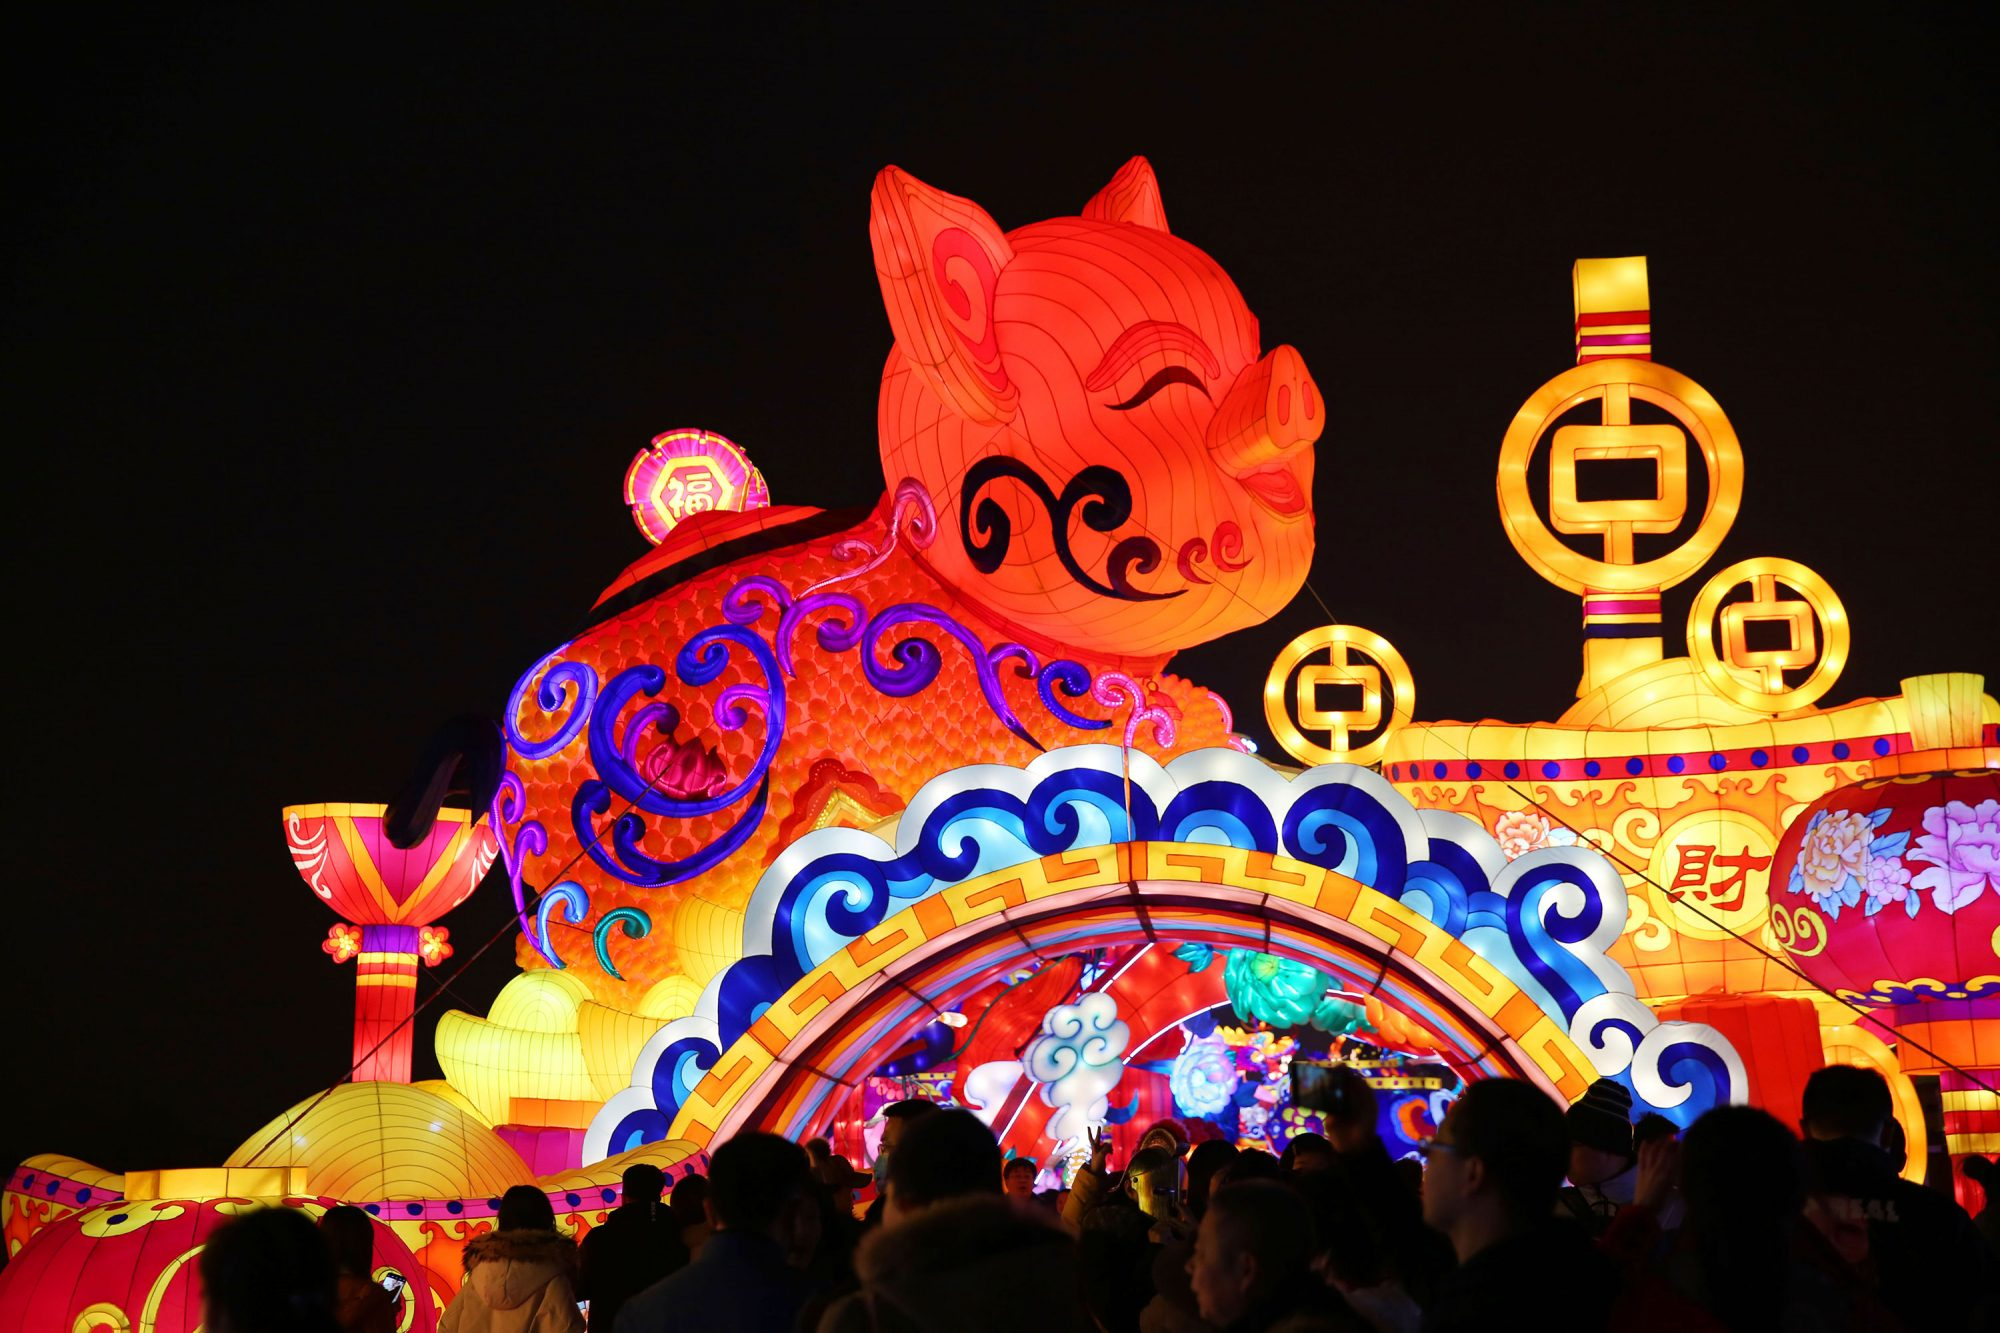 2019 Xi'an City Wall Lantern Festival To Welcome Chinese New Year